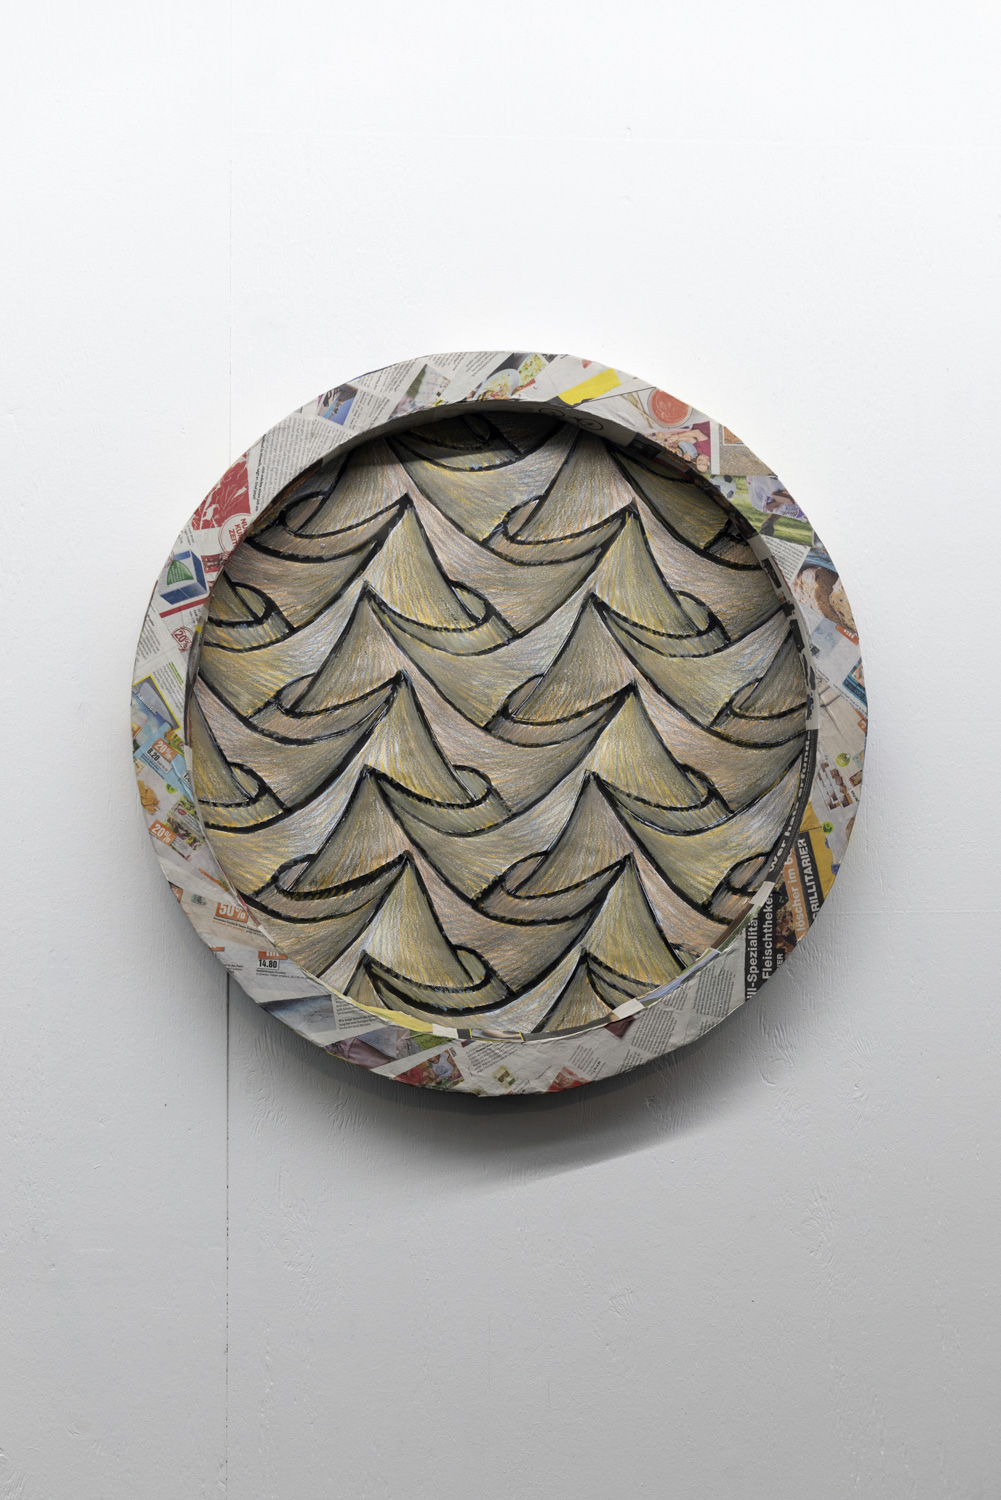 Sam Porritt, Desert, 2018. Brush, ink and wax crayon on paper. Card, plaster, papier-mâché.  82 cm (diameter) x 7.5 cm. Photographer Nici Jost.